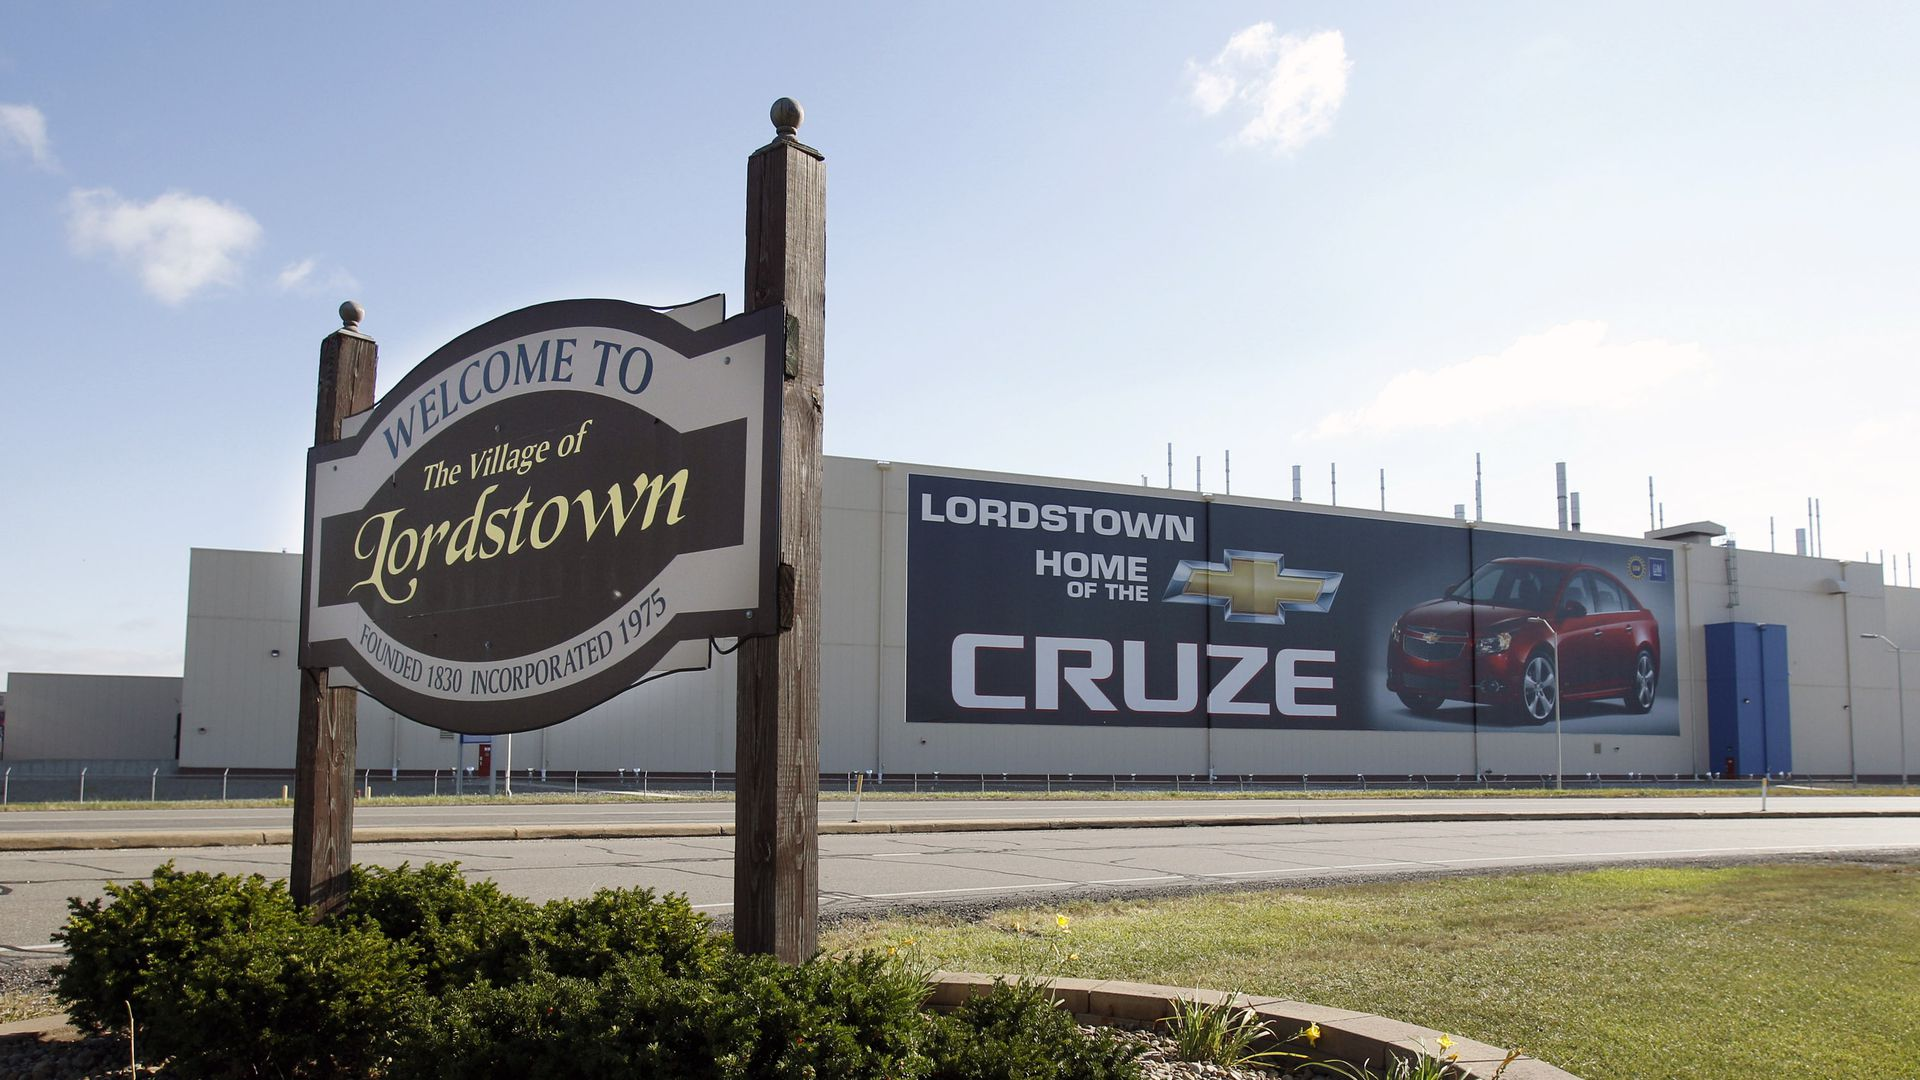 A welcome sign to Lordstown, Ohio, where the Chevy Cruz is manufactured.